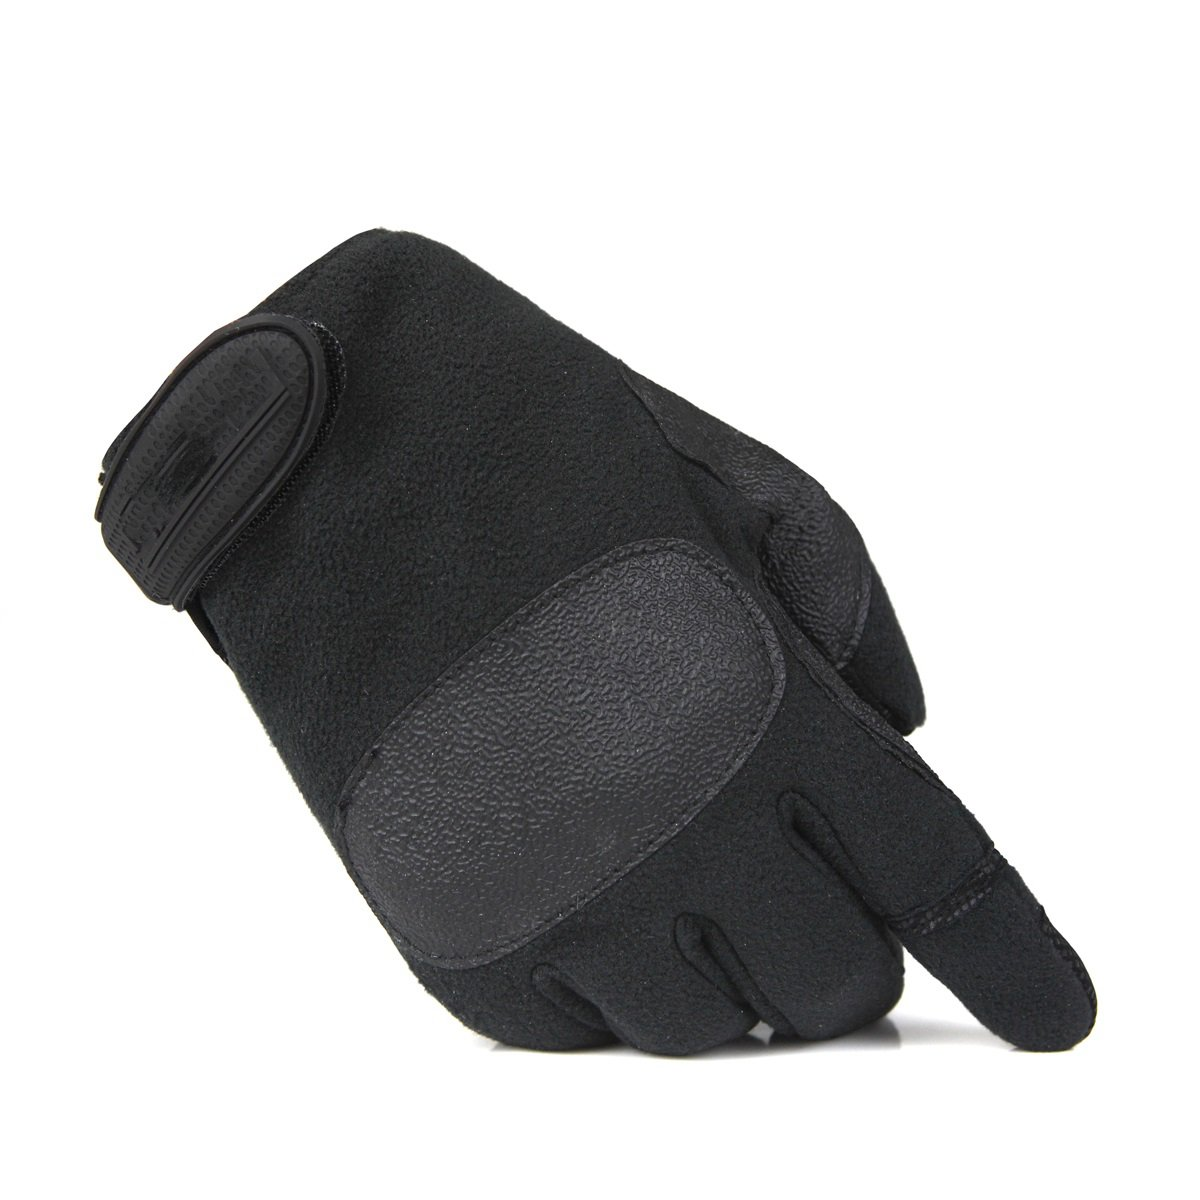 Fleece anti-skid wear-resistant riding climbing climbing training full-finger gloves мерная лента stayer master стальное полотно 10мм 50м 3416 50 z01